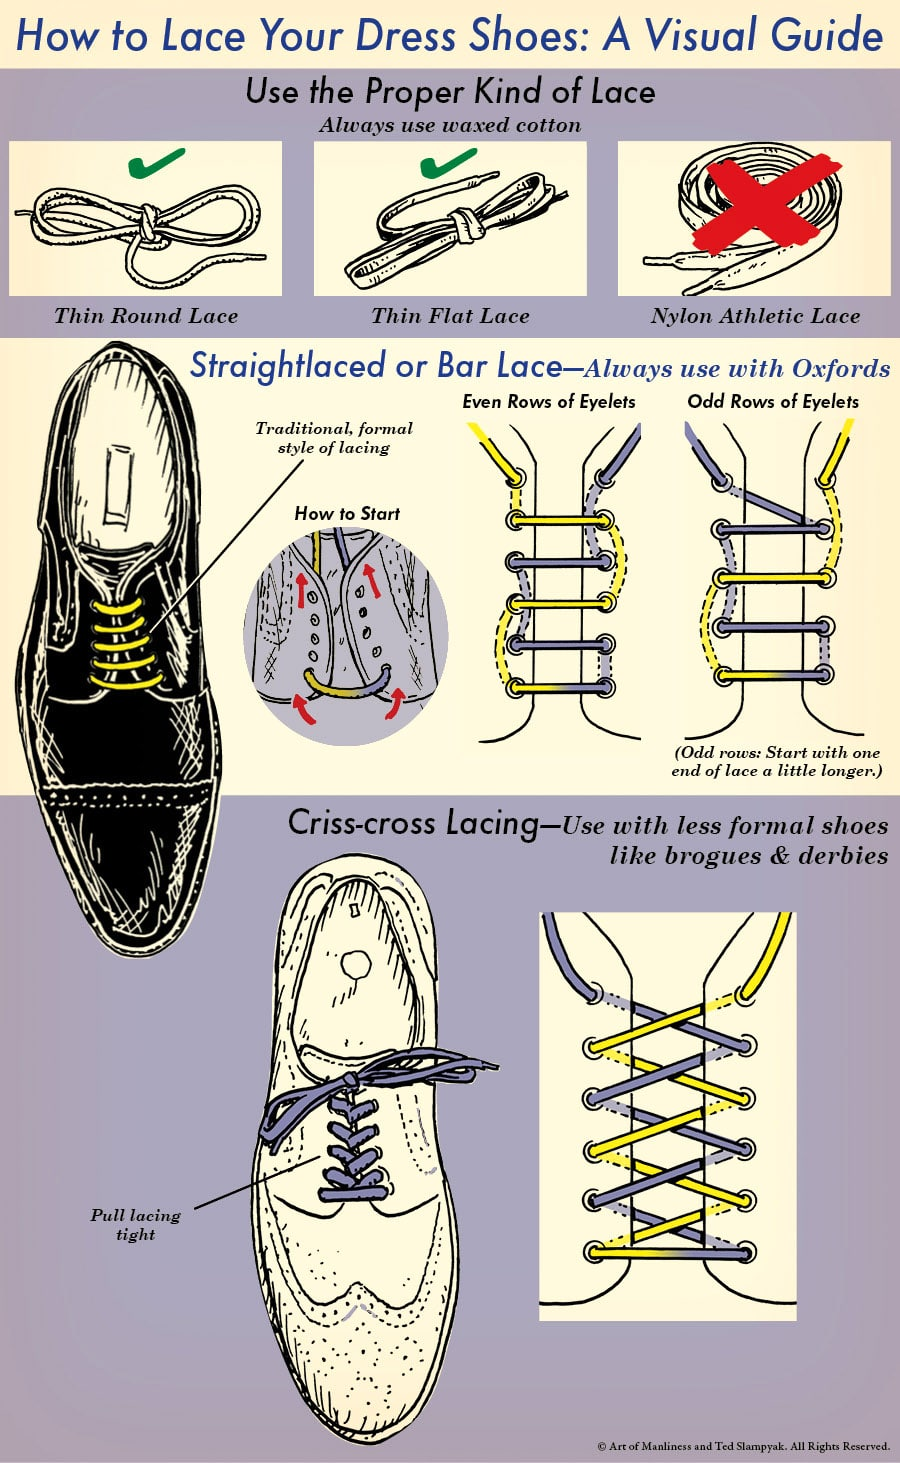 How to Lace Your Dress Shoes | The Art of Manliness